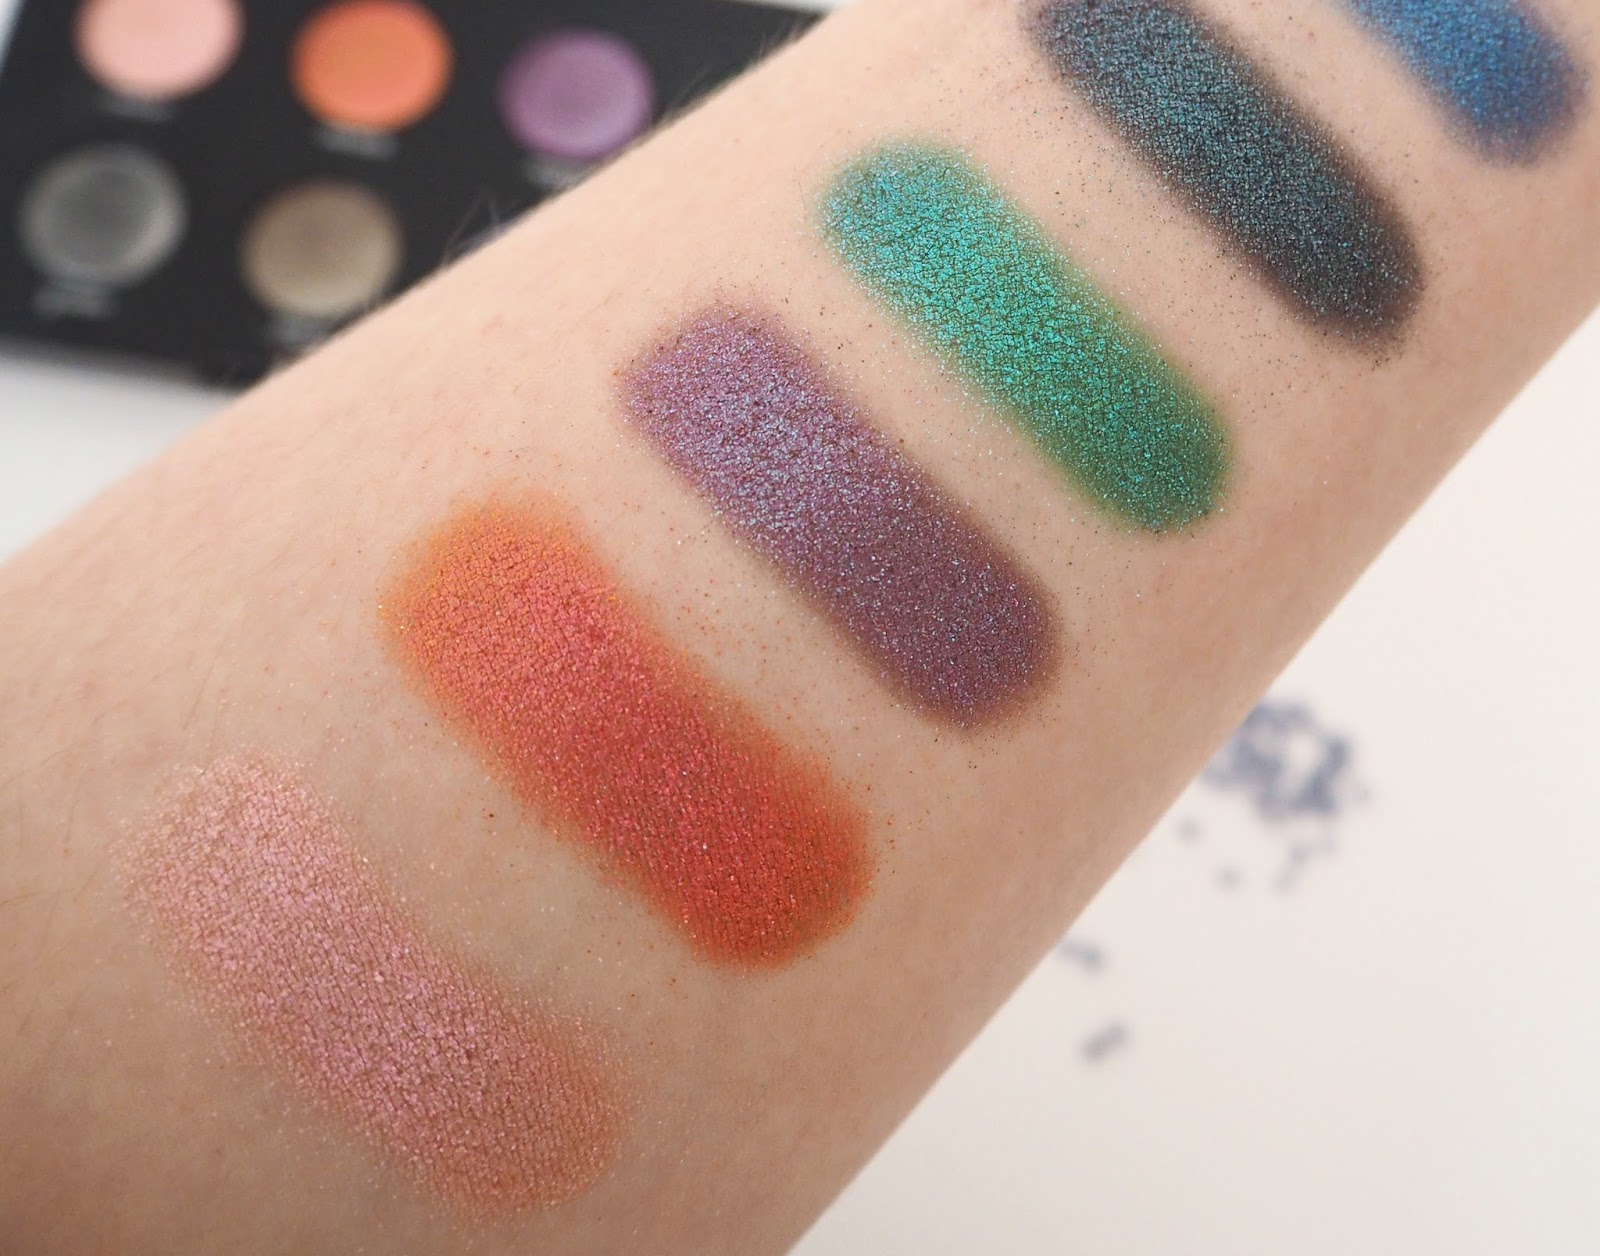 Urban Decay Moondust Palette, Swatches, Beauty Blogger, Urban Decay Review, Eye Shadow Swatches, Make Up Blogger, Make Up Review, Make Up Palette, Eye Shadow Palette, UK Blogger,